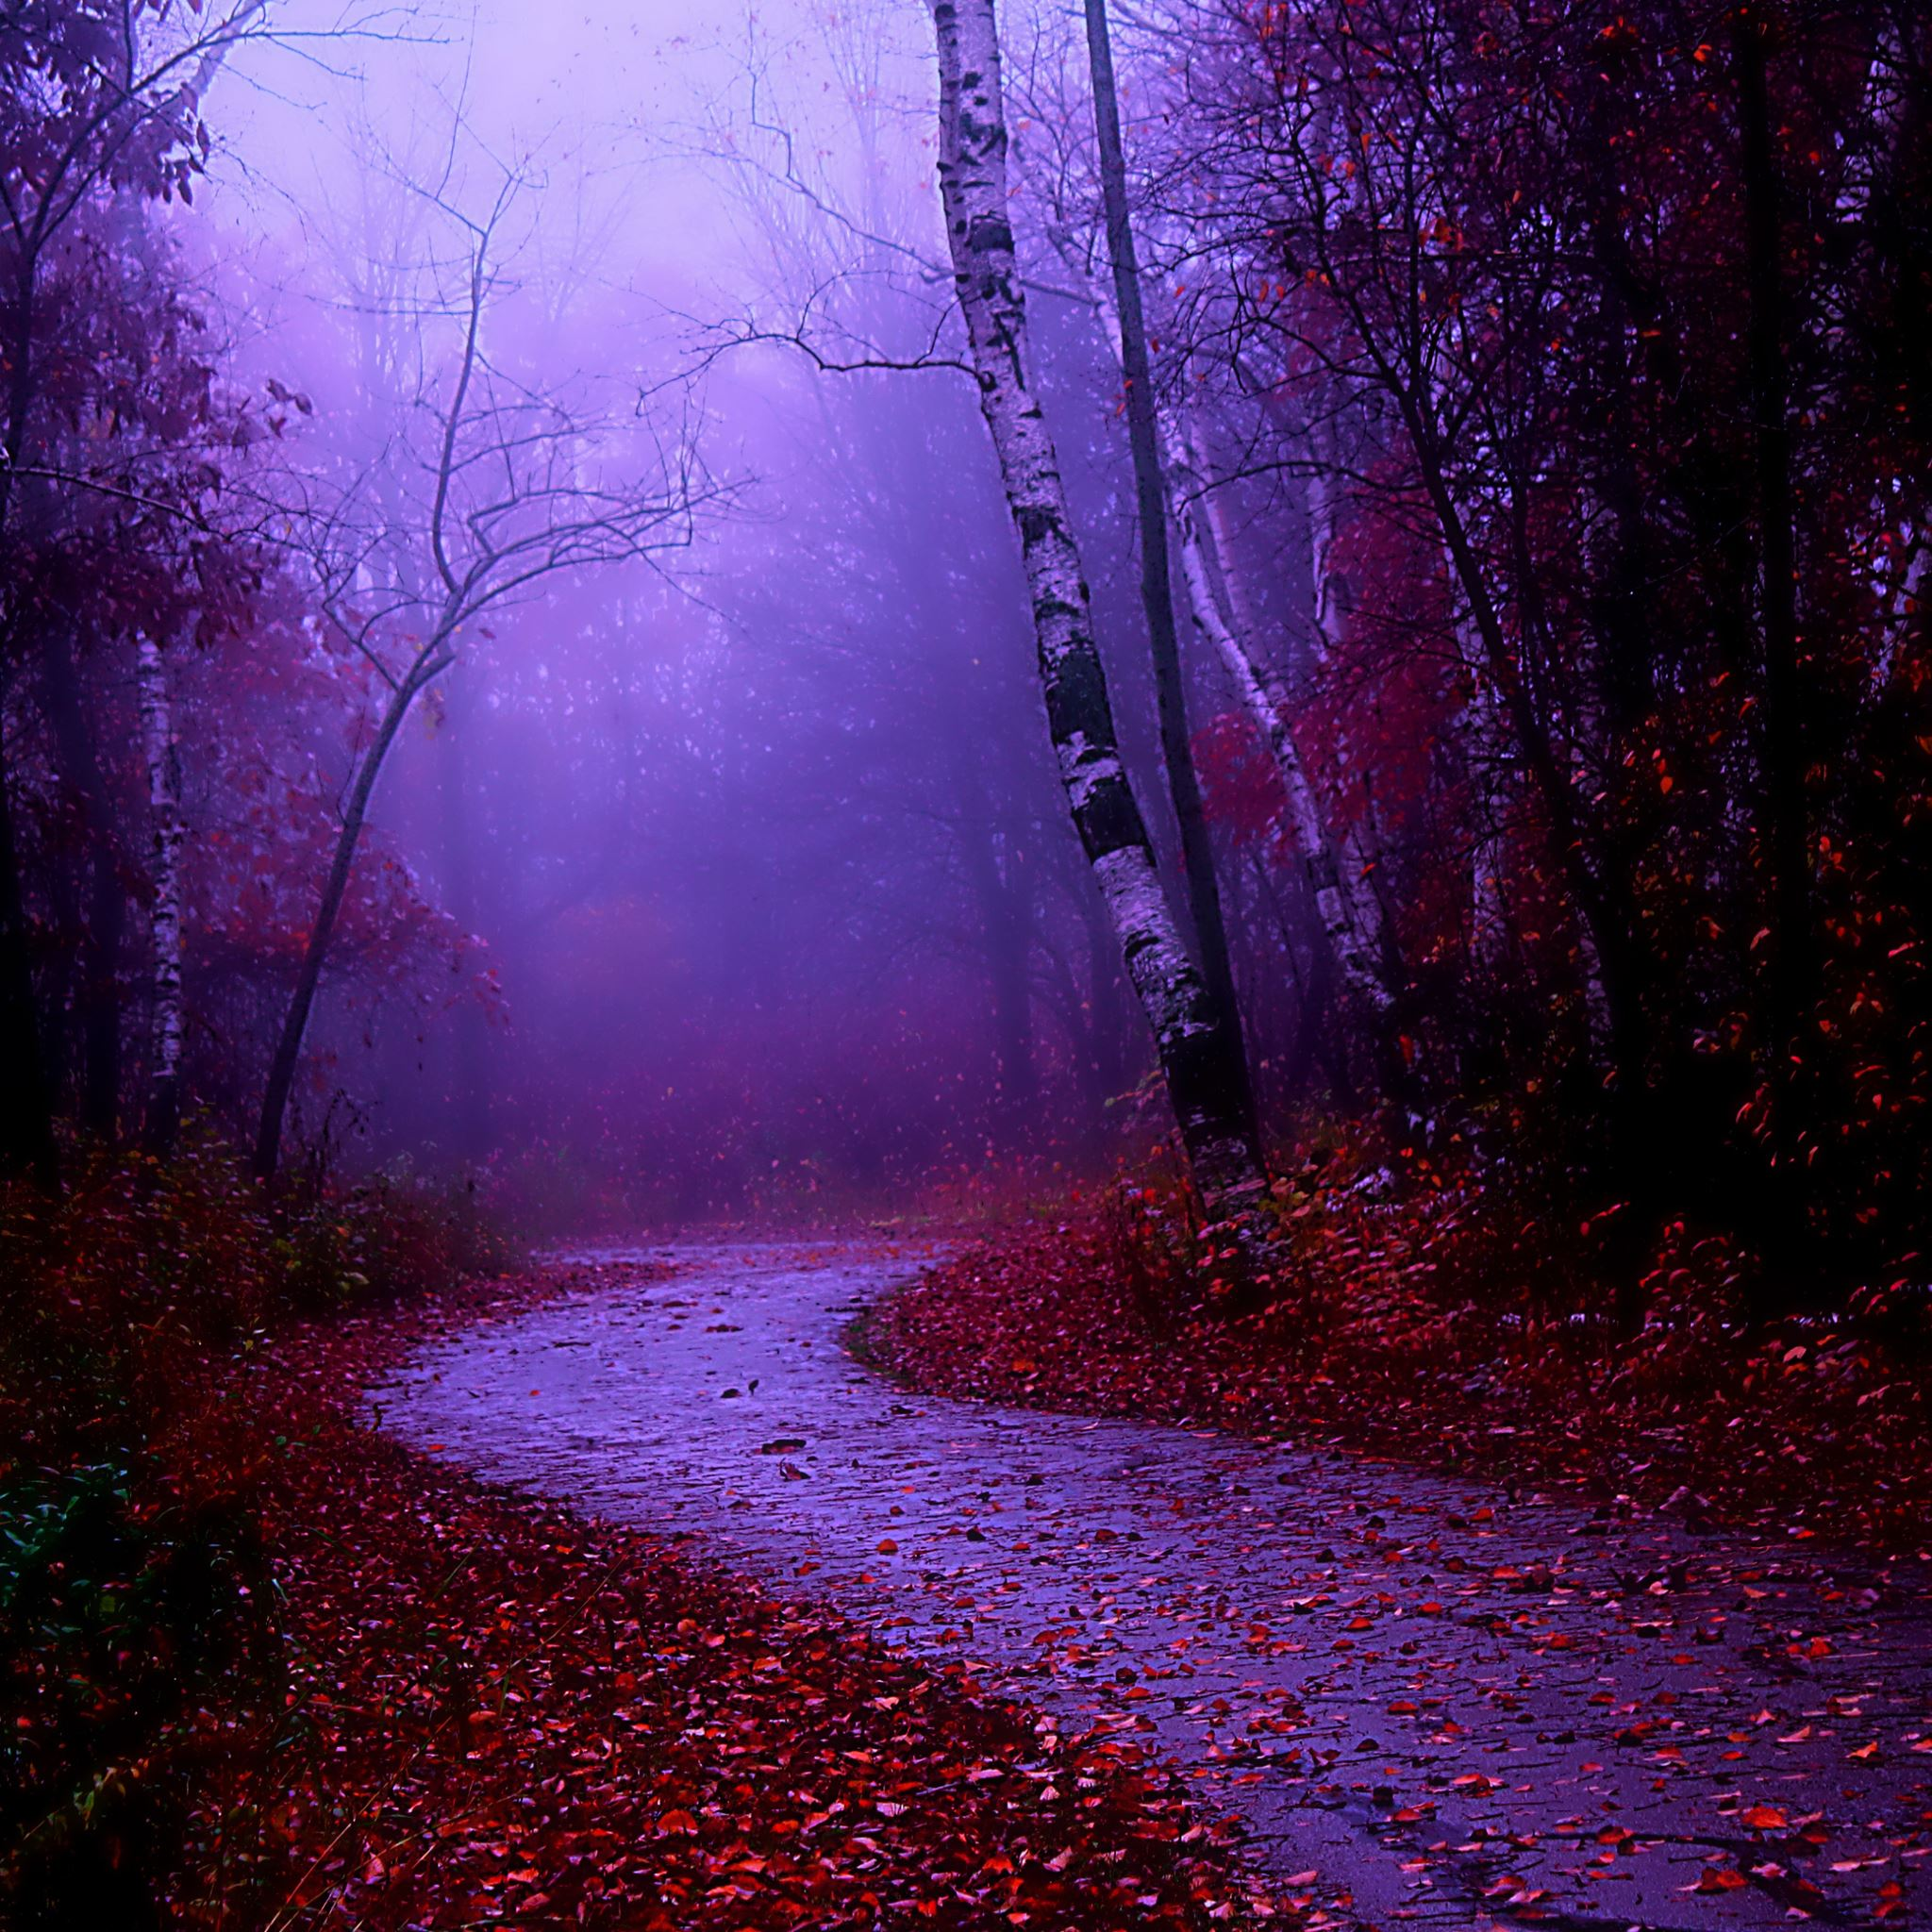 Old Iphone Wallpapers: Misty Morning Walk IPad Air Wallpaper Download